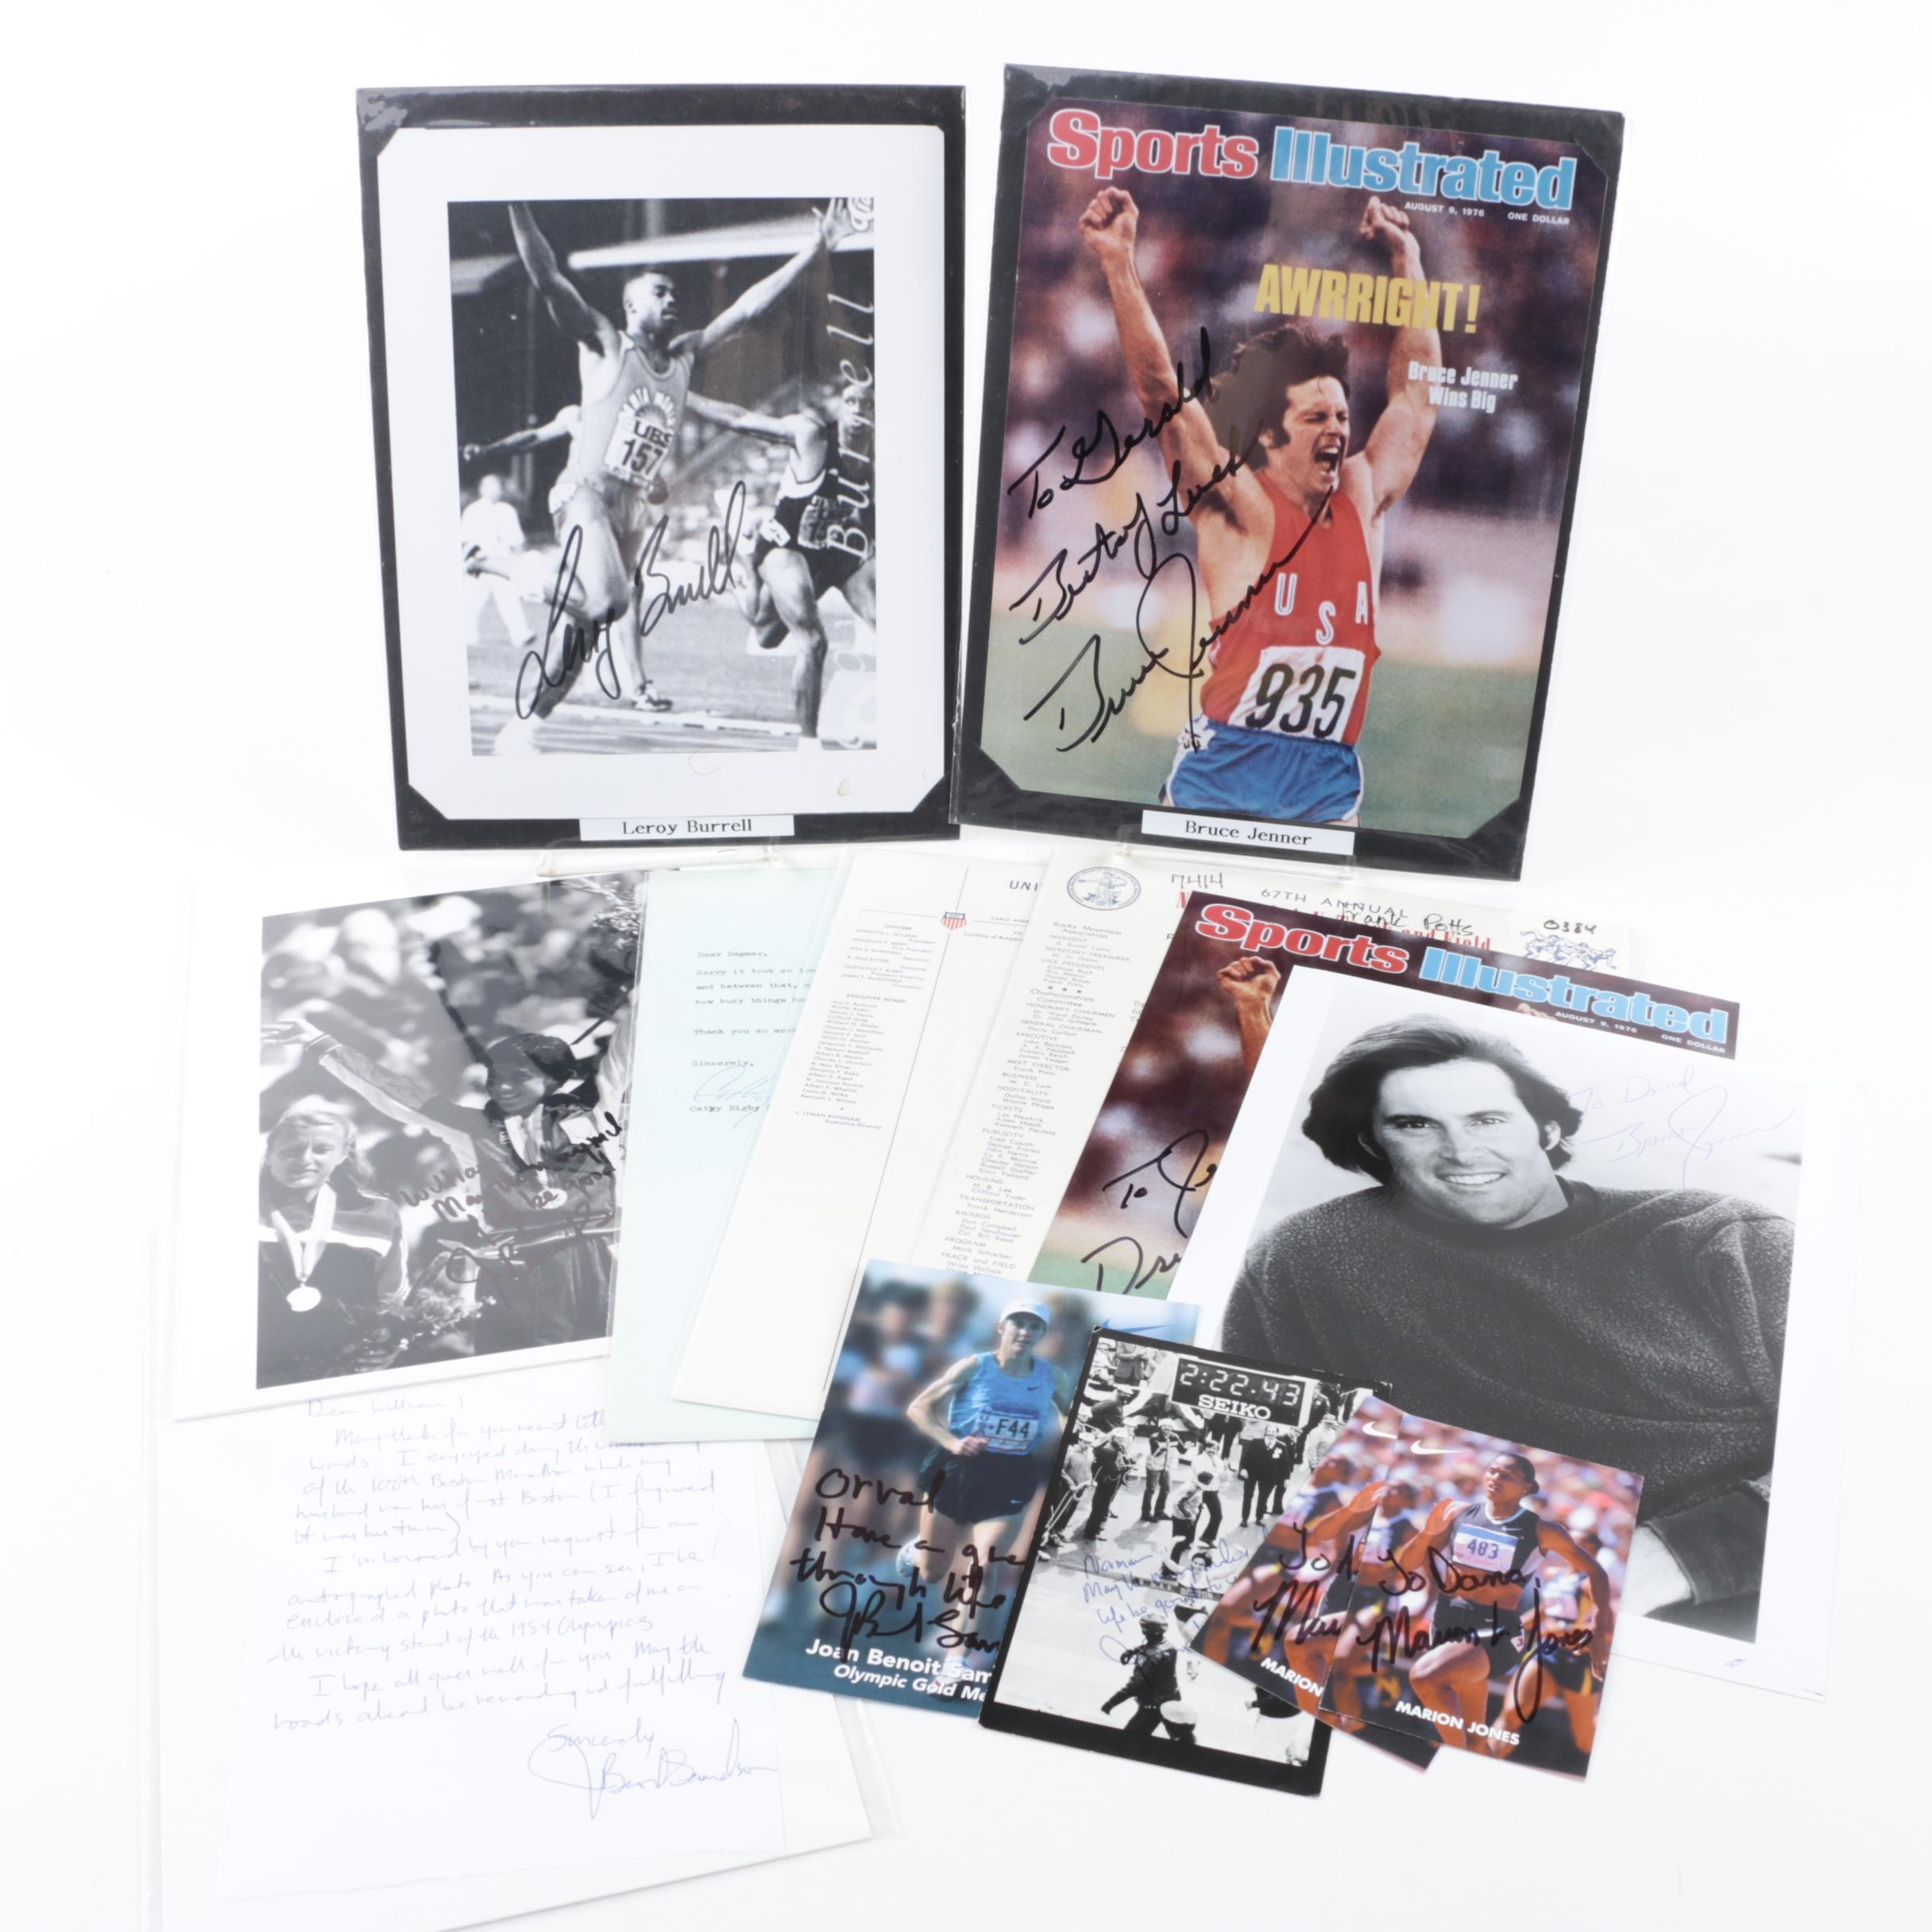 Olympian and Track and Field Athletes Autographs with Ephemera